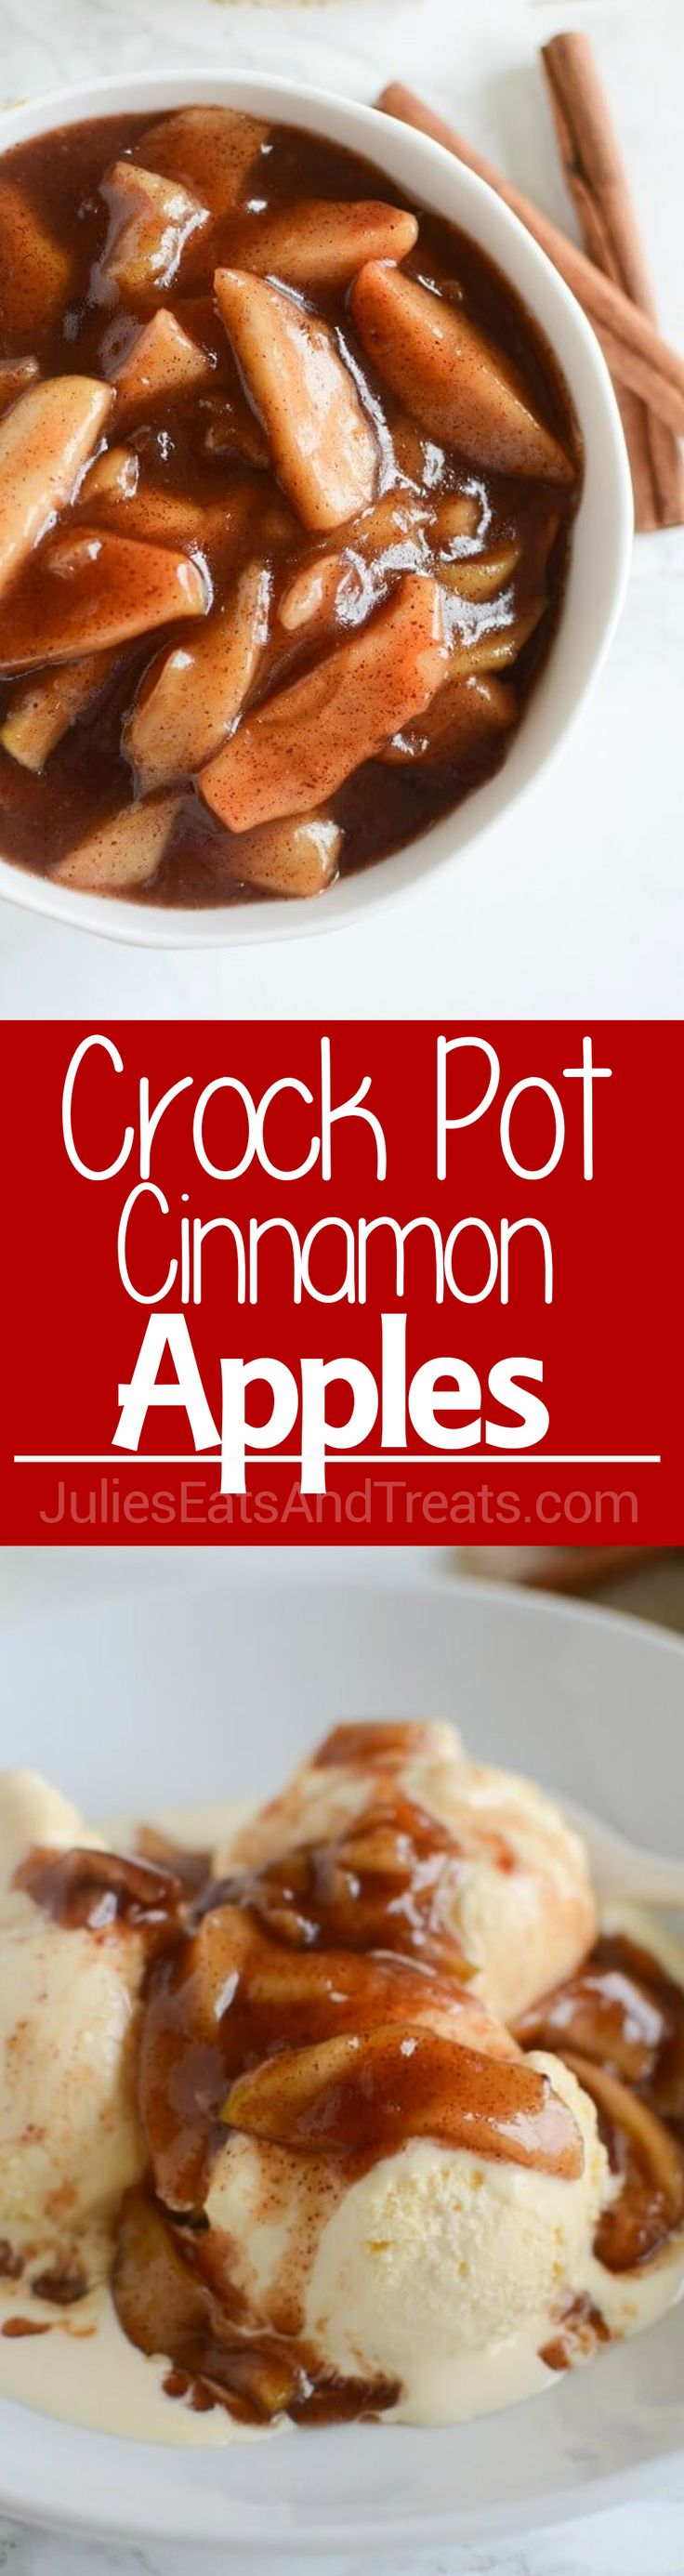 Crock Pot Cinnamon Apples – easy and delicious spiced apples! Perfect served…